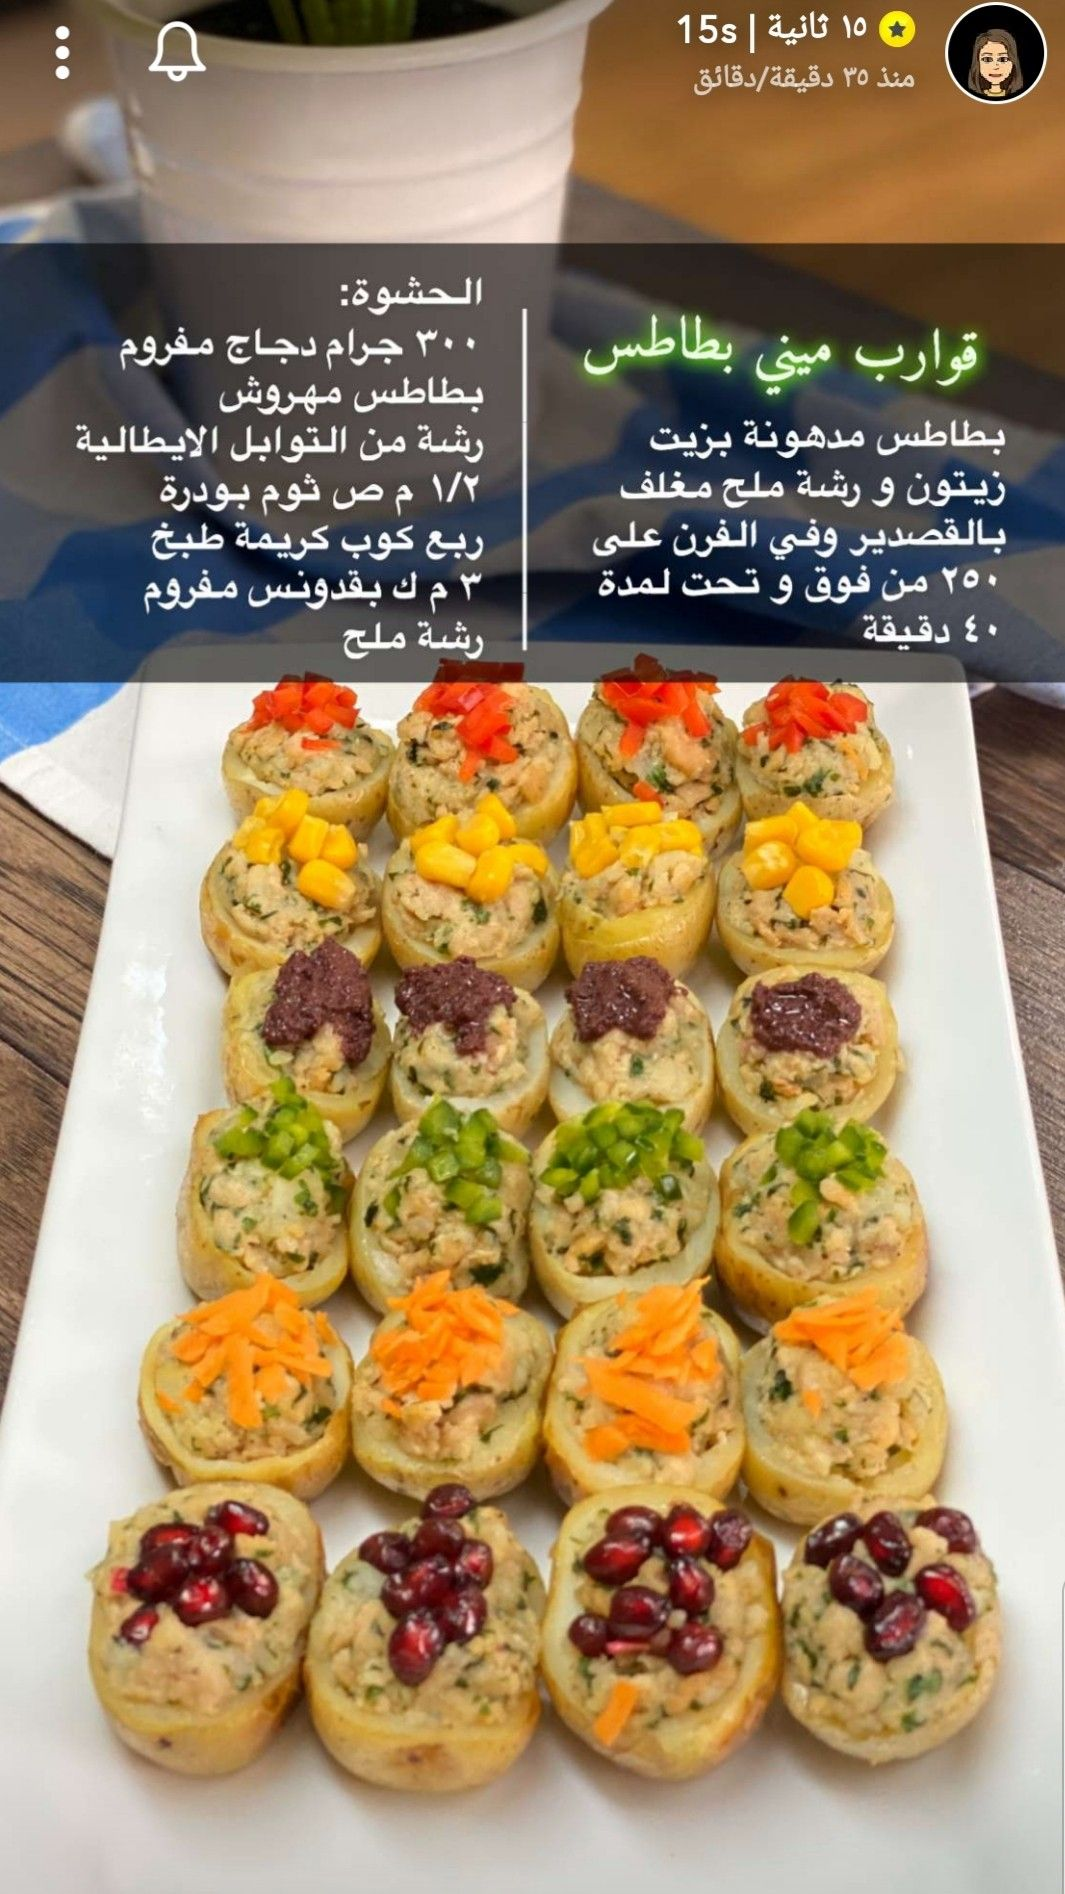 Pin By Hnoreen On Food طبخ Food Receipes Save Food Recipes